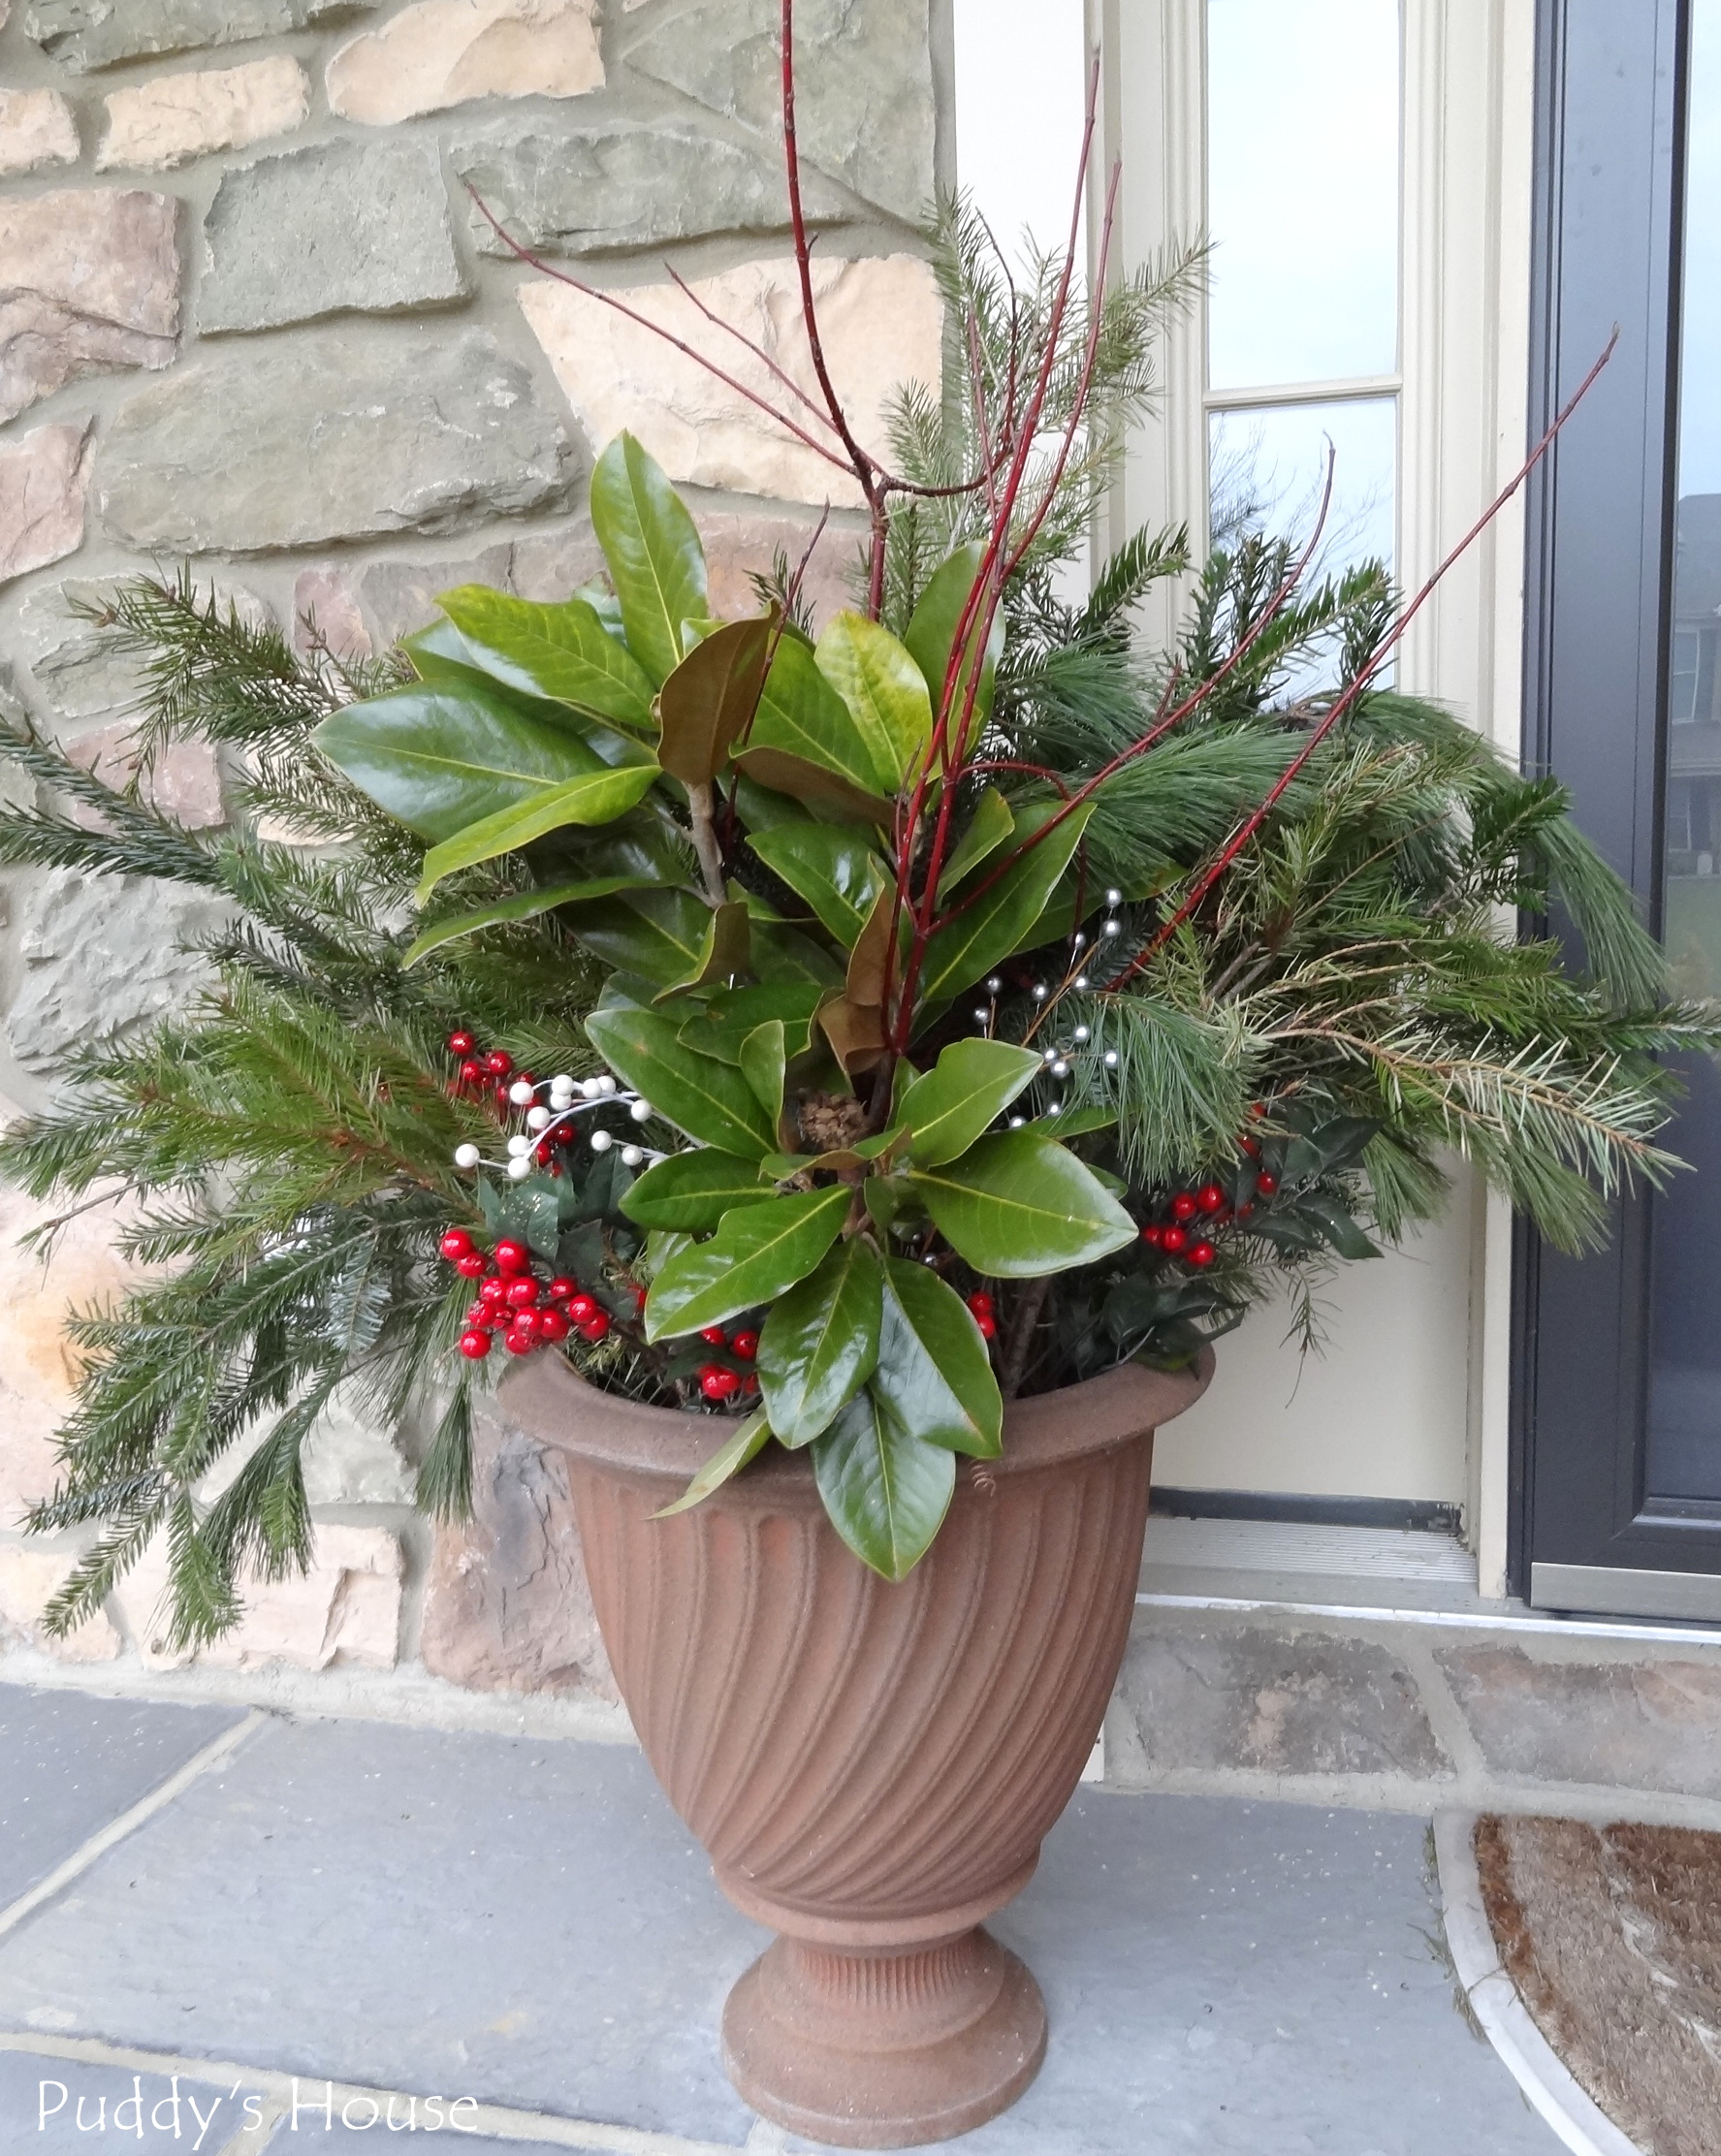 Christmas Greens magnolia berries urn on porch Puddys